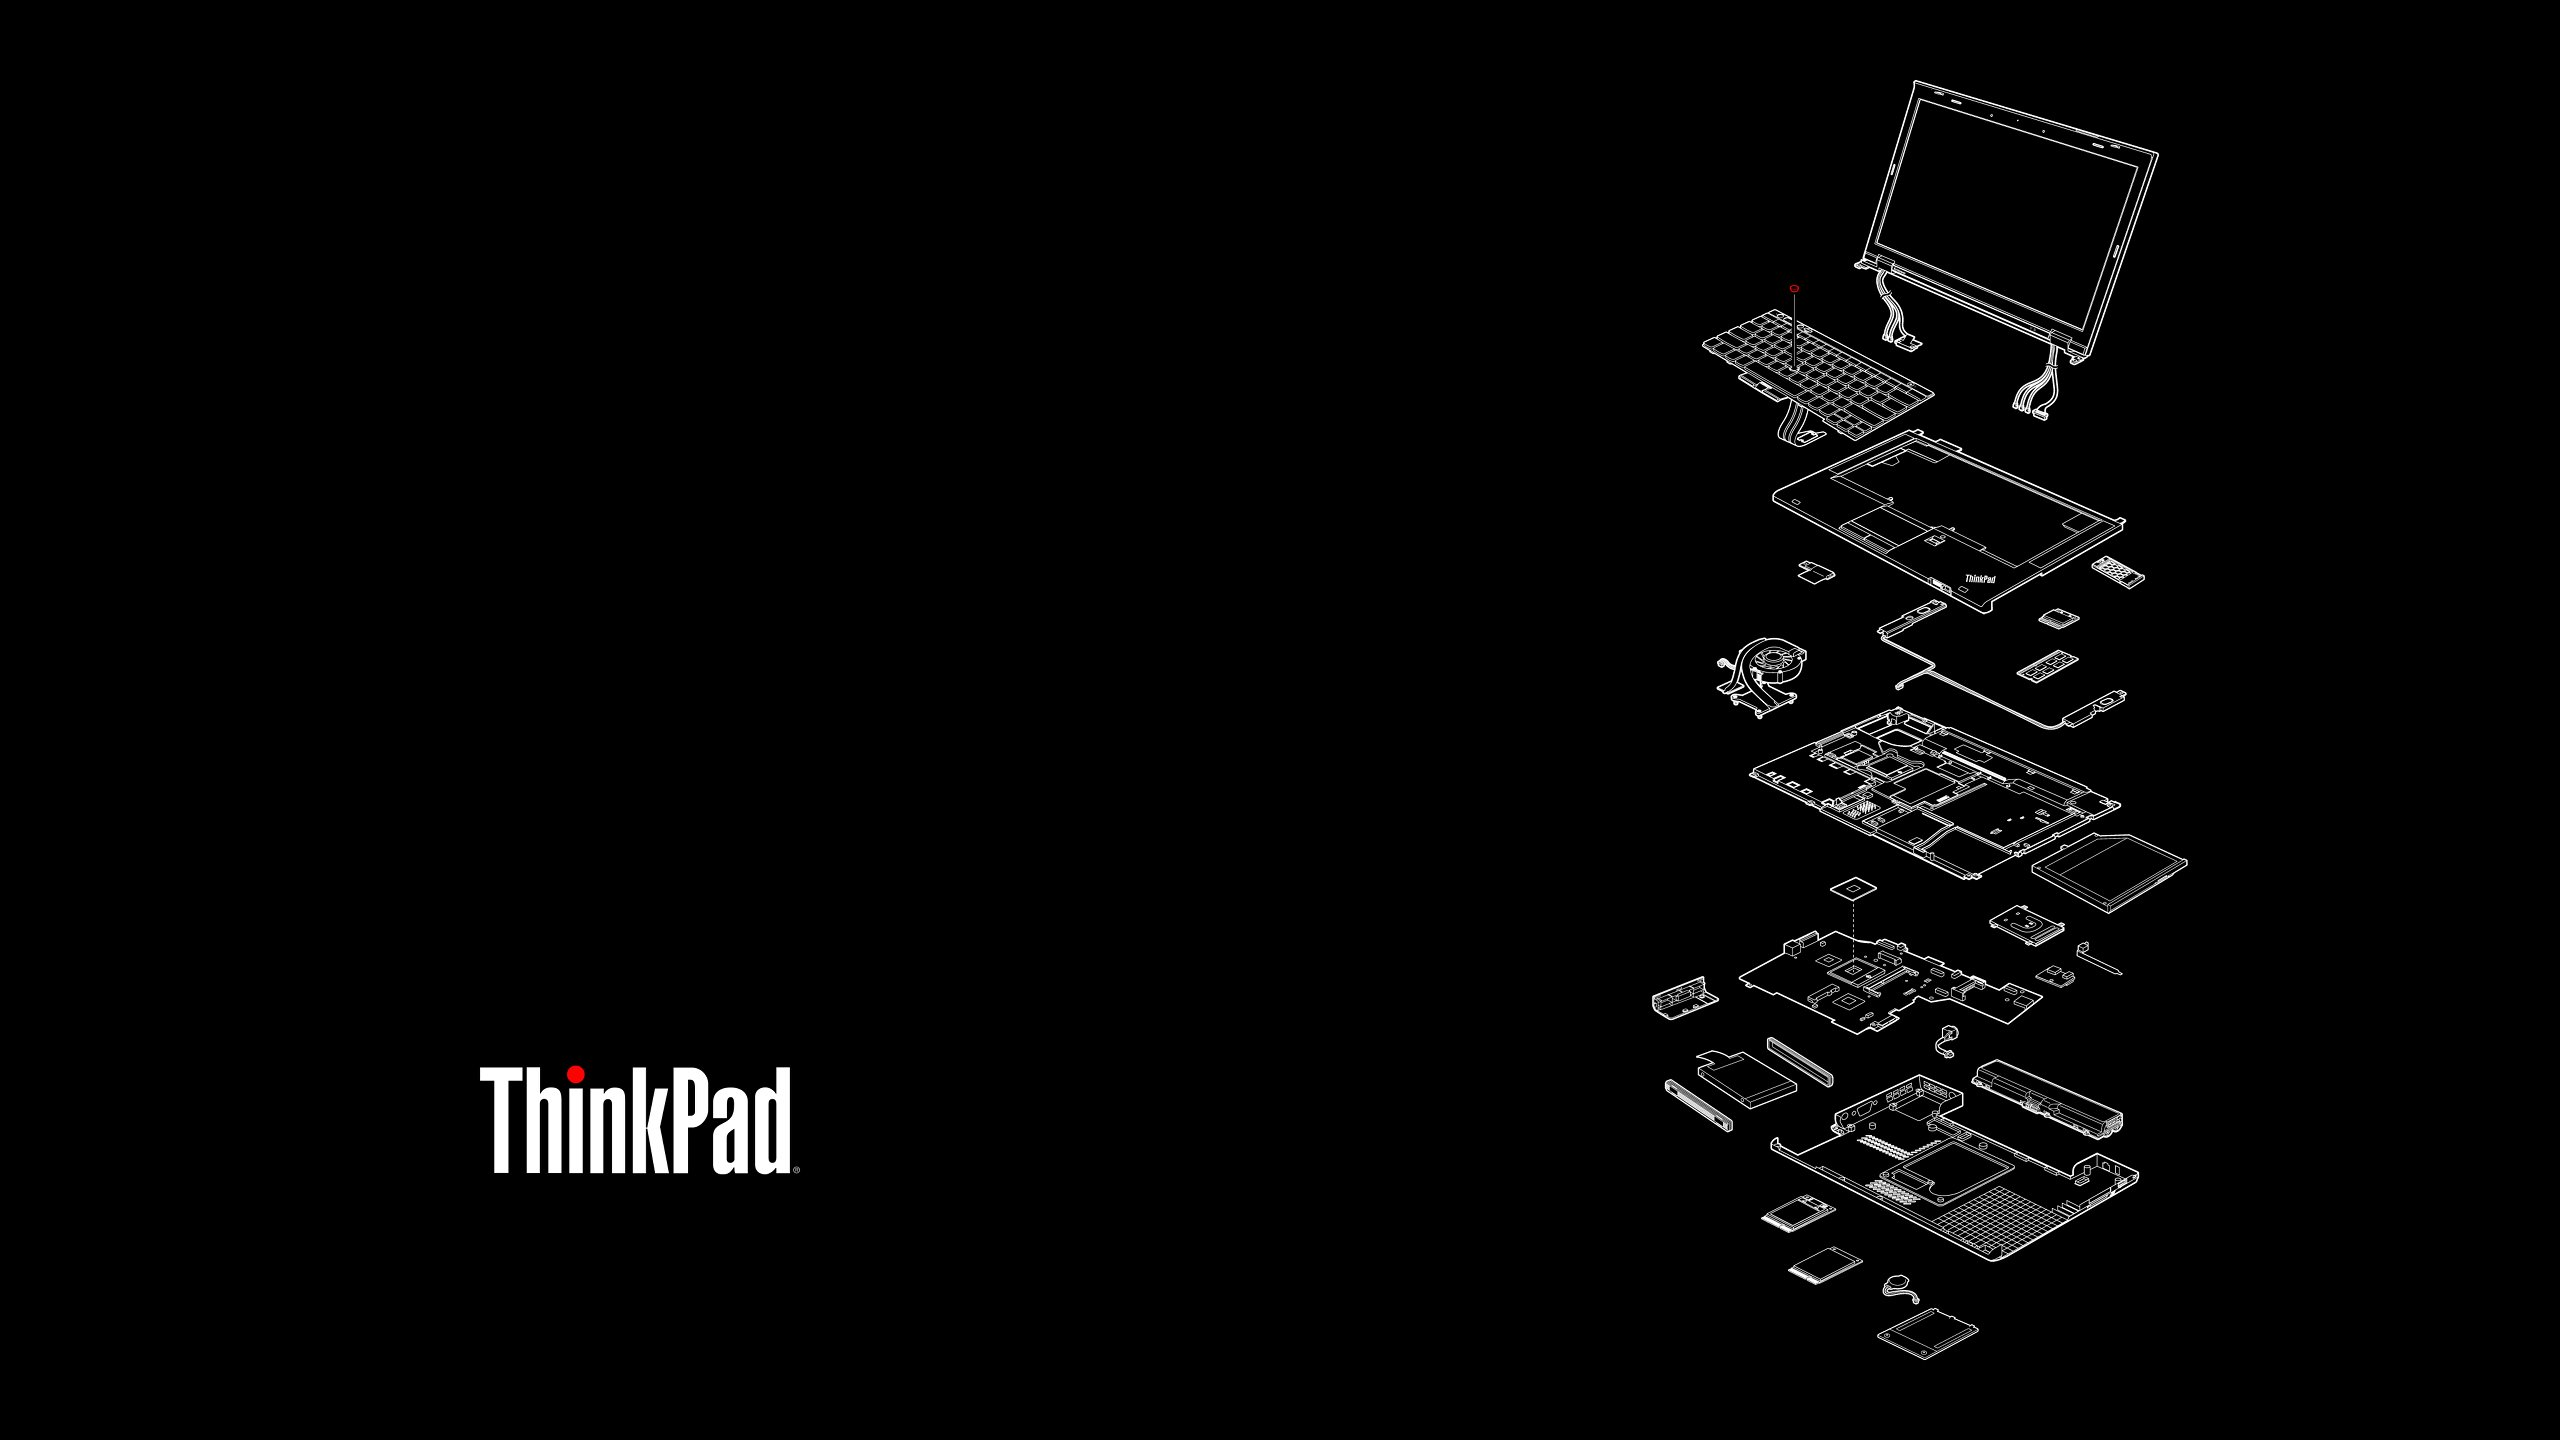 Thinkpad Wallpaper 1920x1080 Posted By Sarah Sellers